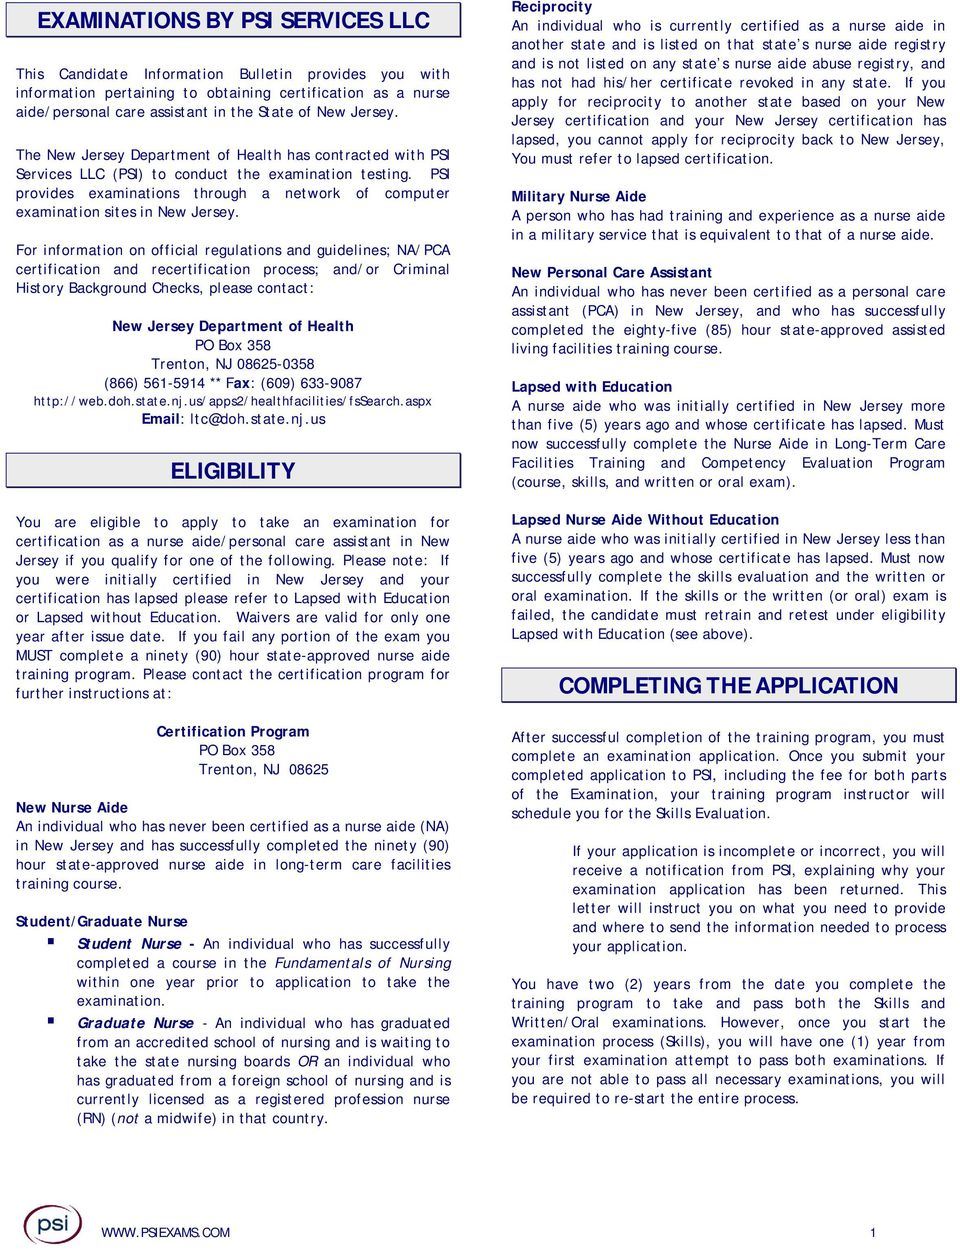 Nurse Aide Personal Care Assistant Examination Candidate